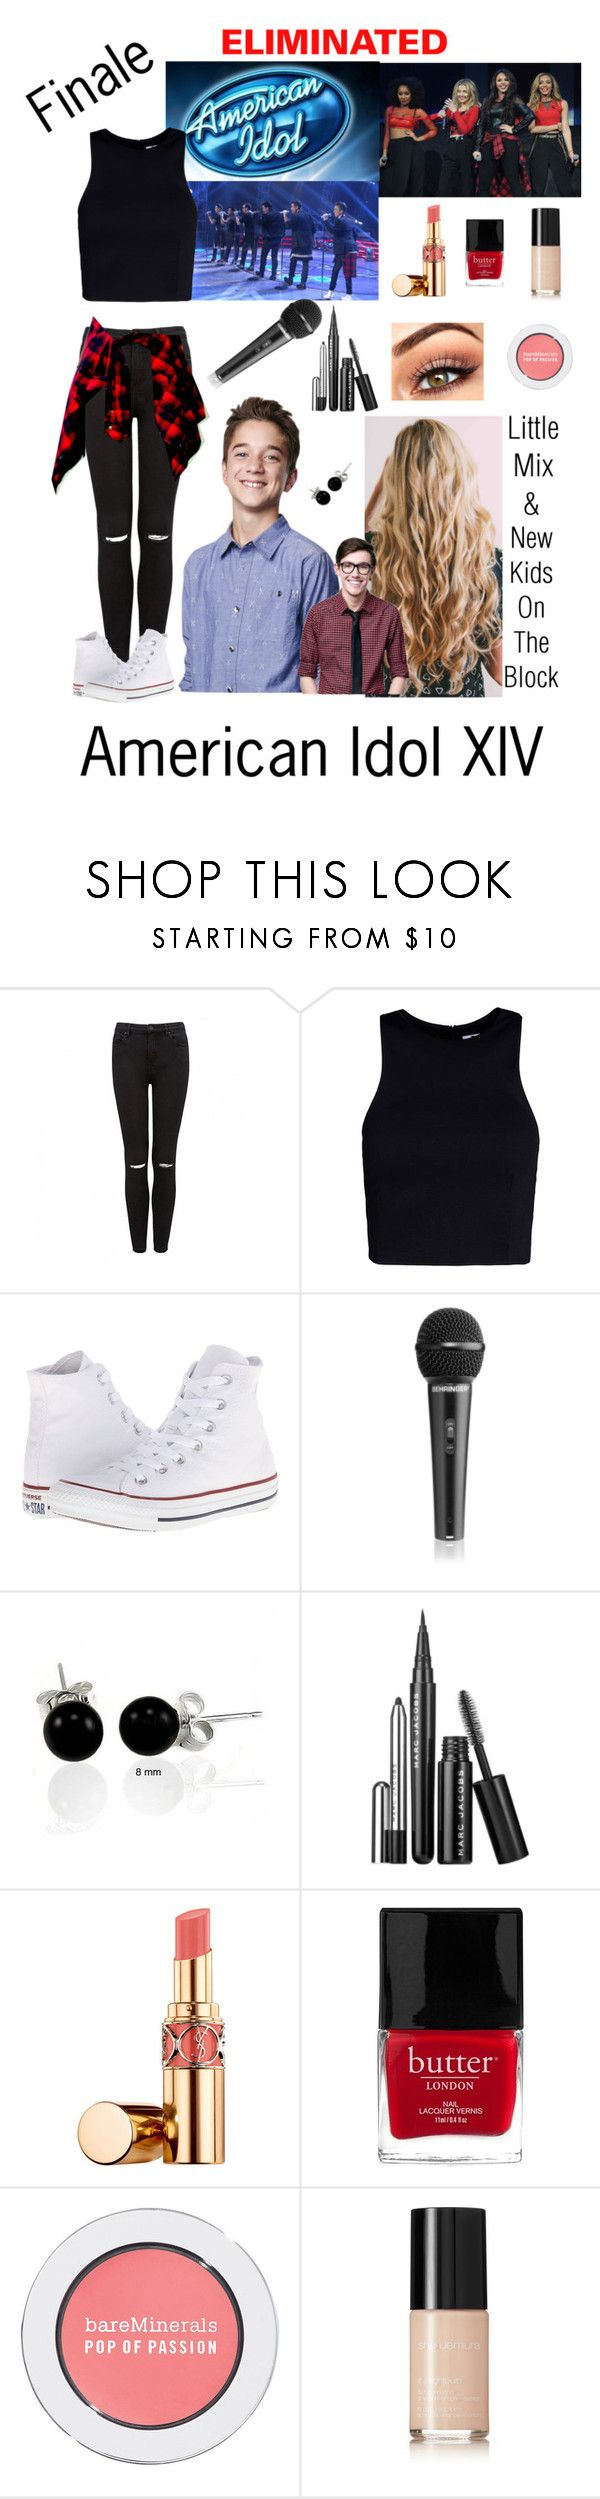 """""""American Idol XIV -Daniel"""" by avaamlong ❤ liked on Polyvore featuring injury, Forever New, T By Alexander Wang, Converse, Bling Jewelry, Marc Jacobs, Yves Saint Laurent, Butter London, Bare Escentuals and shu uemura"""